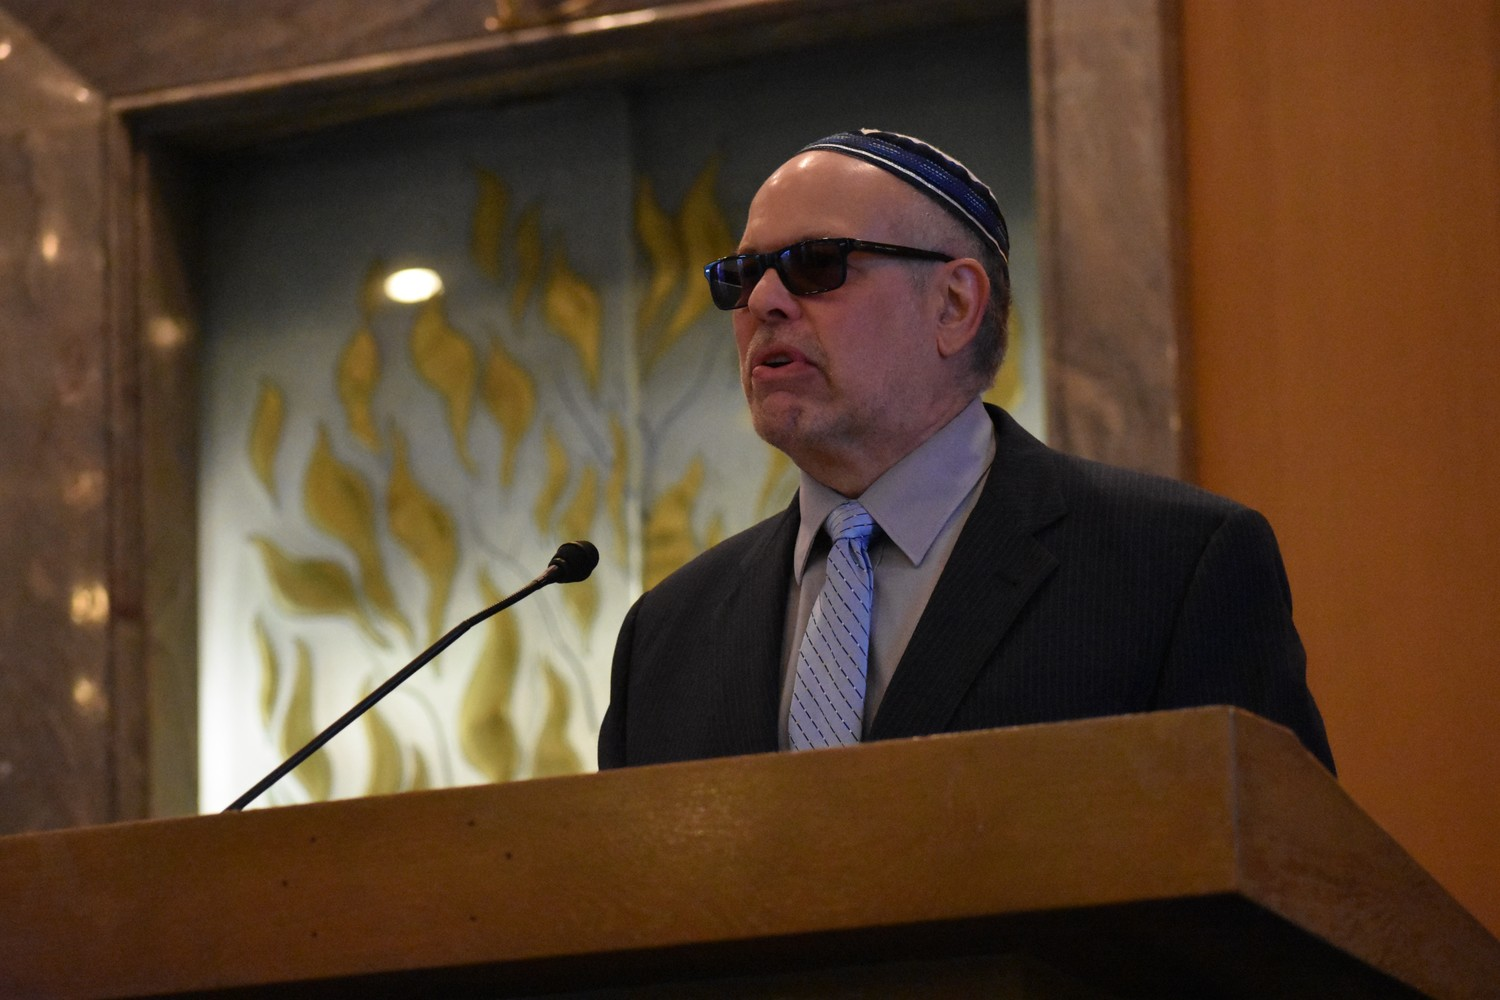 Rabbi Marc Gruber, of Central Synagogue-Beth Emeth in Rockville Centre, pictured at a vigil after the shooting at Marjory Stoneman Douglas High School in Parkland, Fla. in February, reacted to the latest mass shooting on Saturday at a Pittsburgh synagogue.